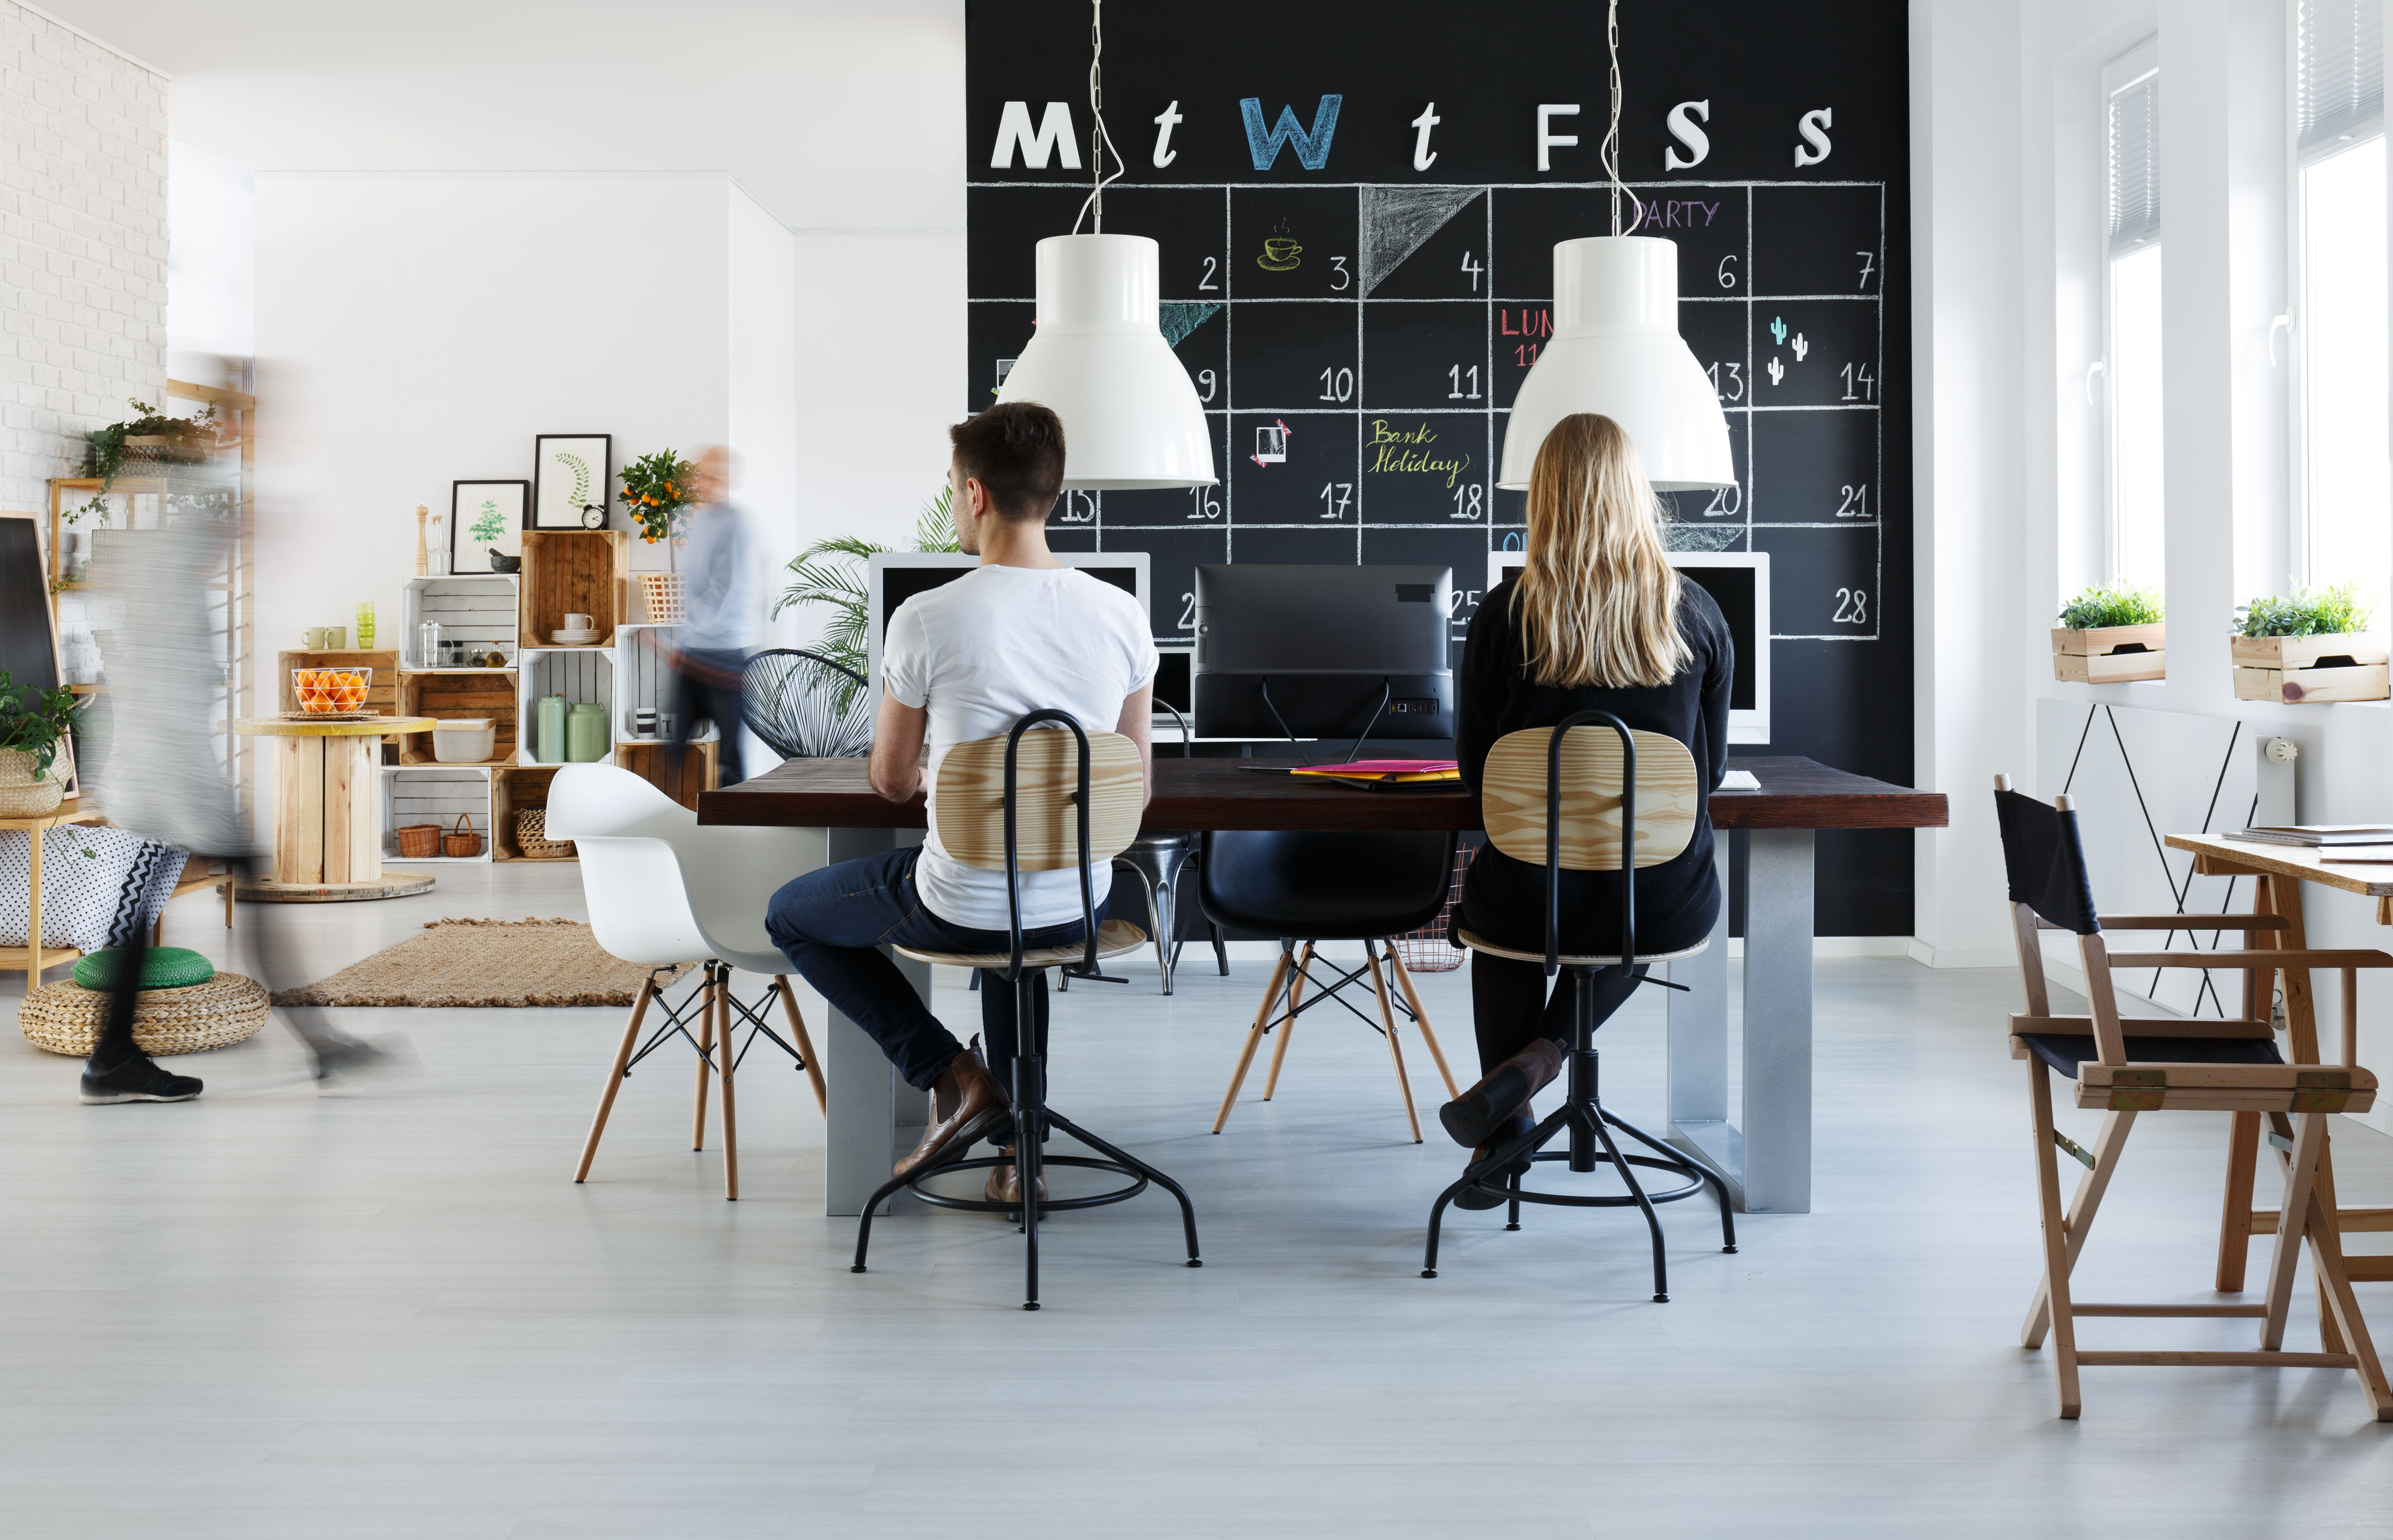 Freelancers in a co-working space with desks, chairs, plants and a calendar on the wall